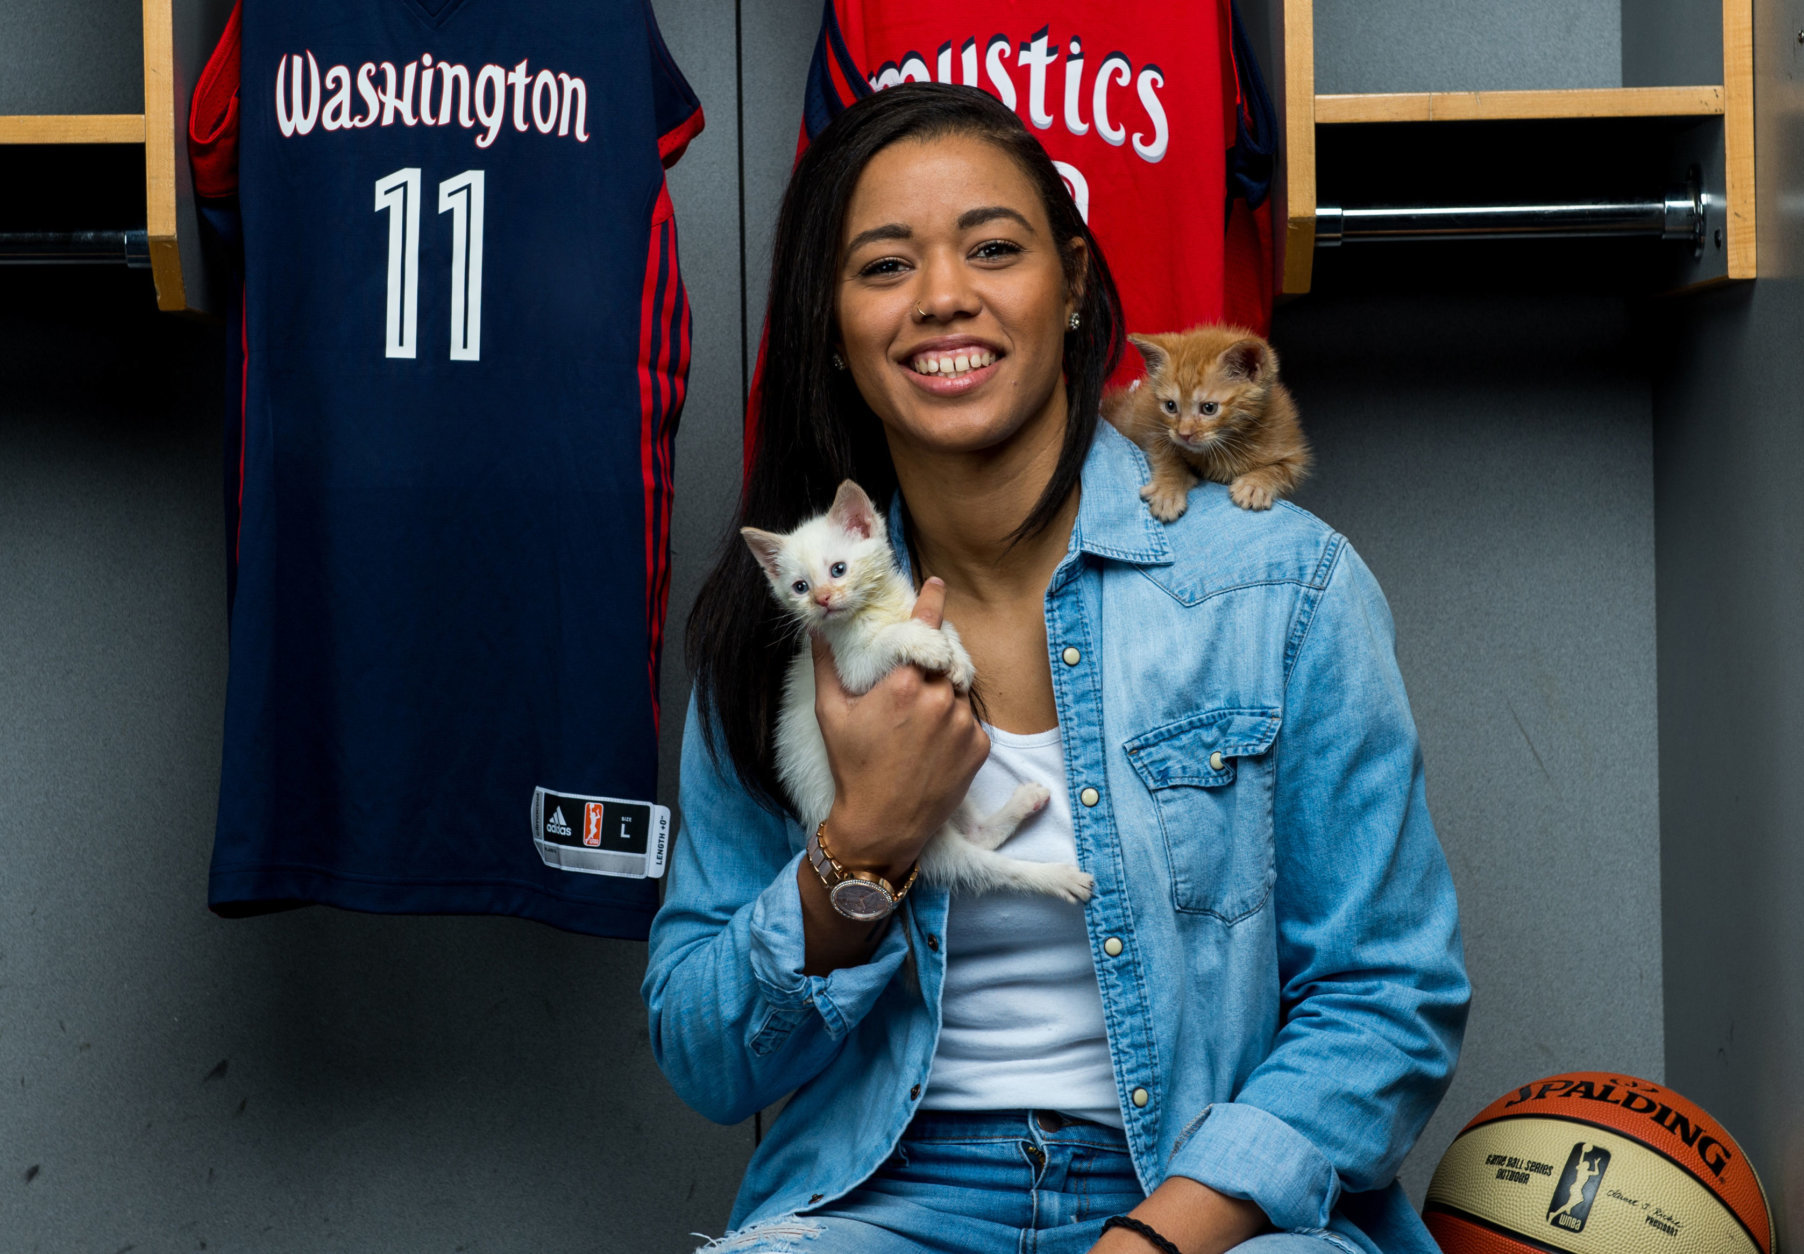 The Mystics' Natasha Cloud with two tiny kittens. (Courtesy Humane Rescue Alliance)